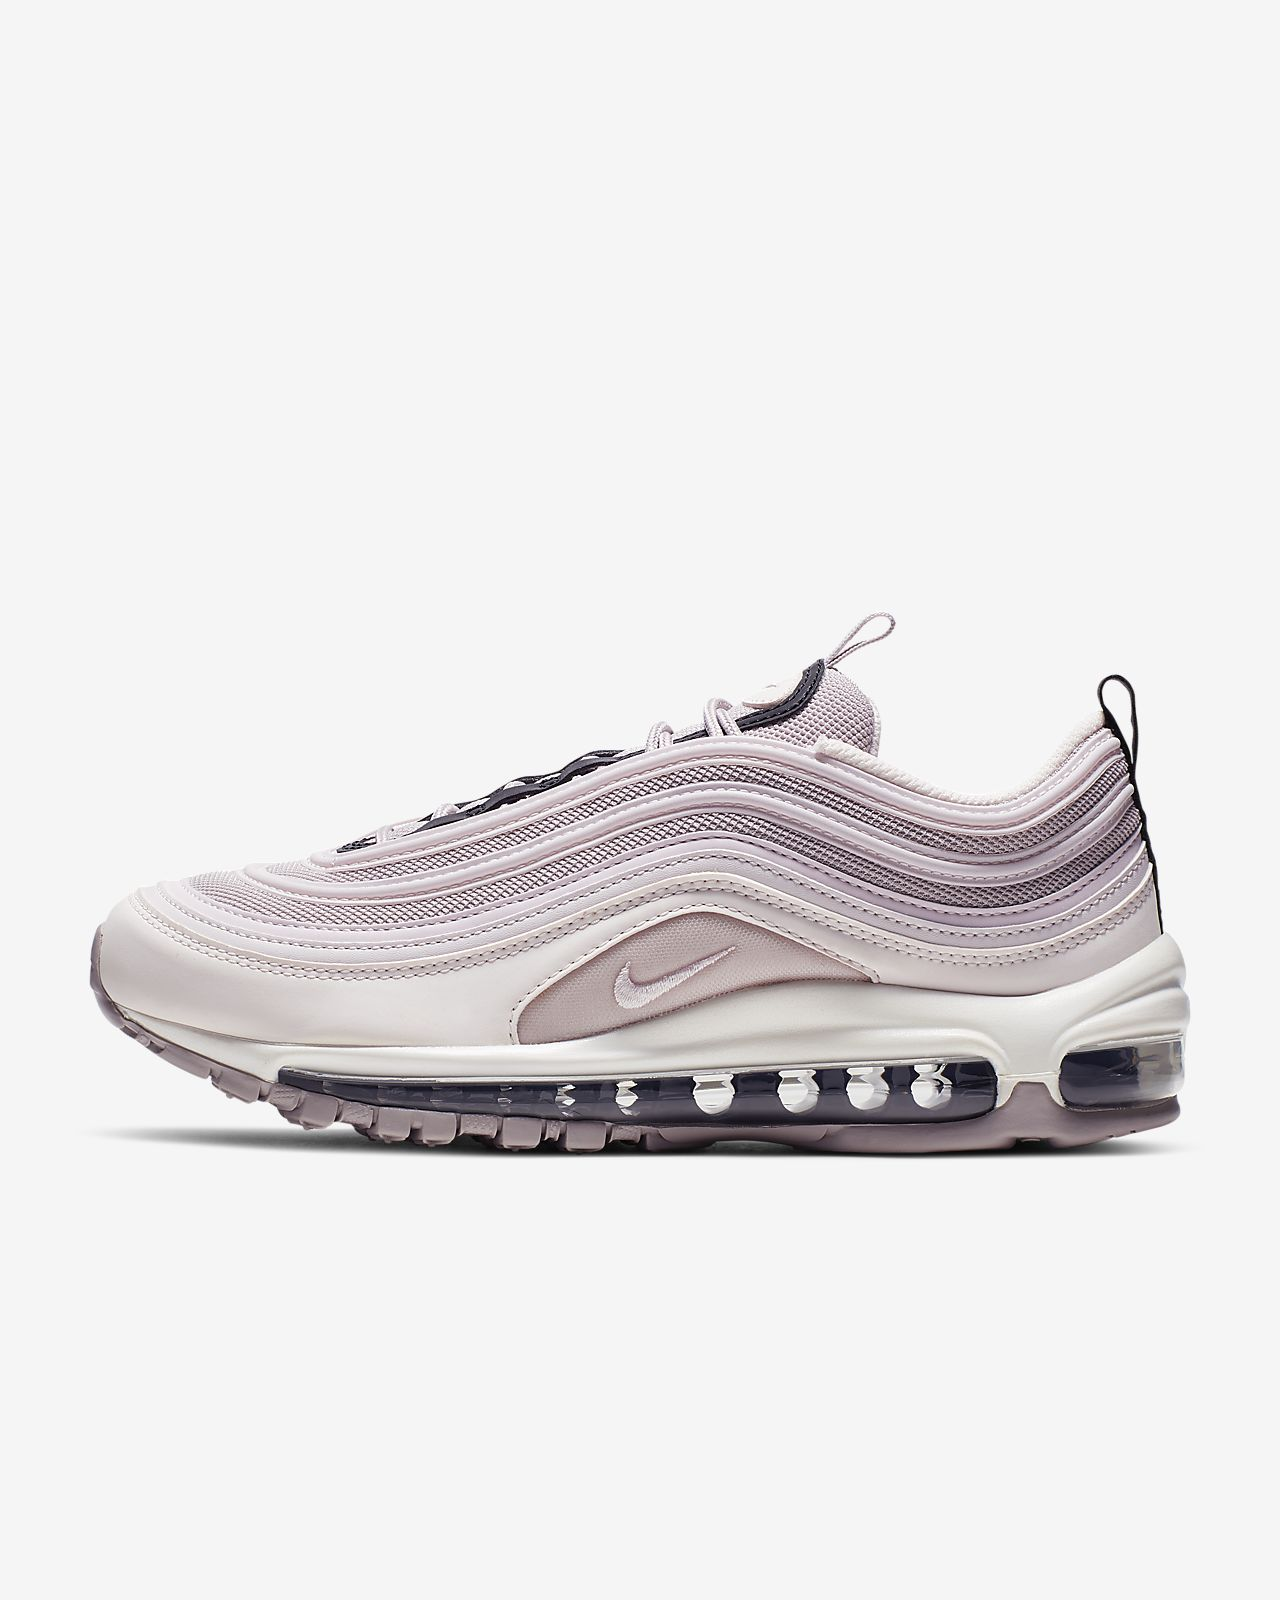 561b8a63f6 Nike Air Max 97 Women's Shoe. Nike.com ZA